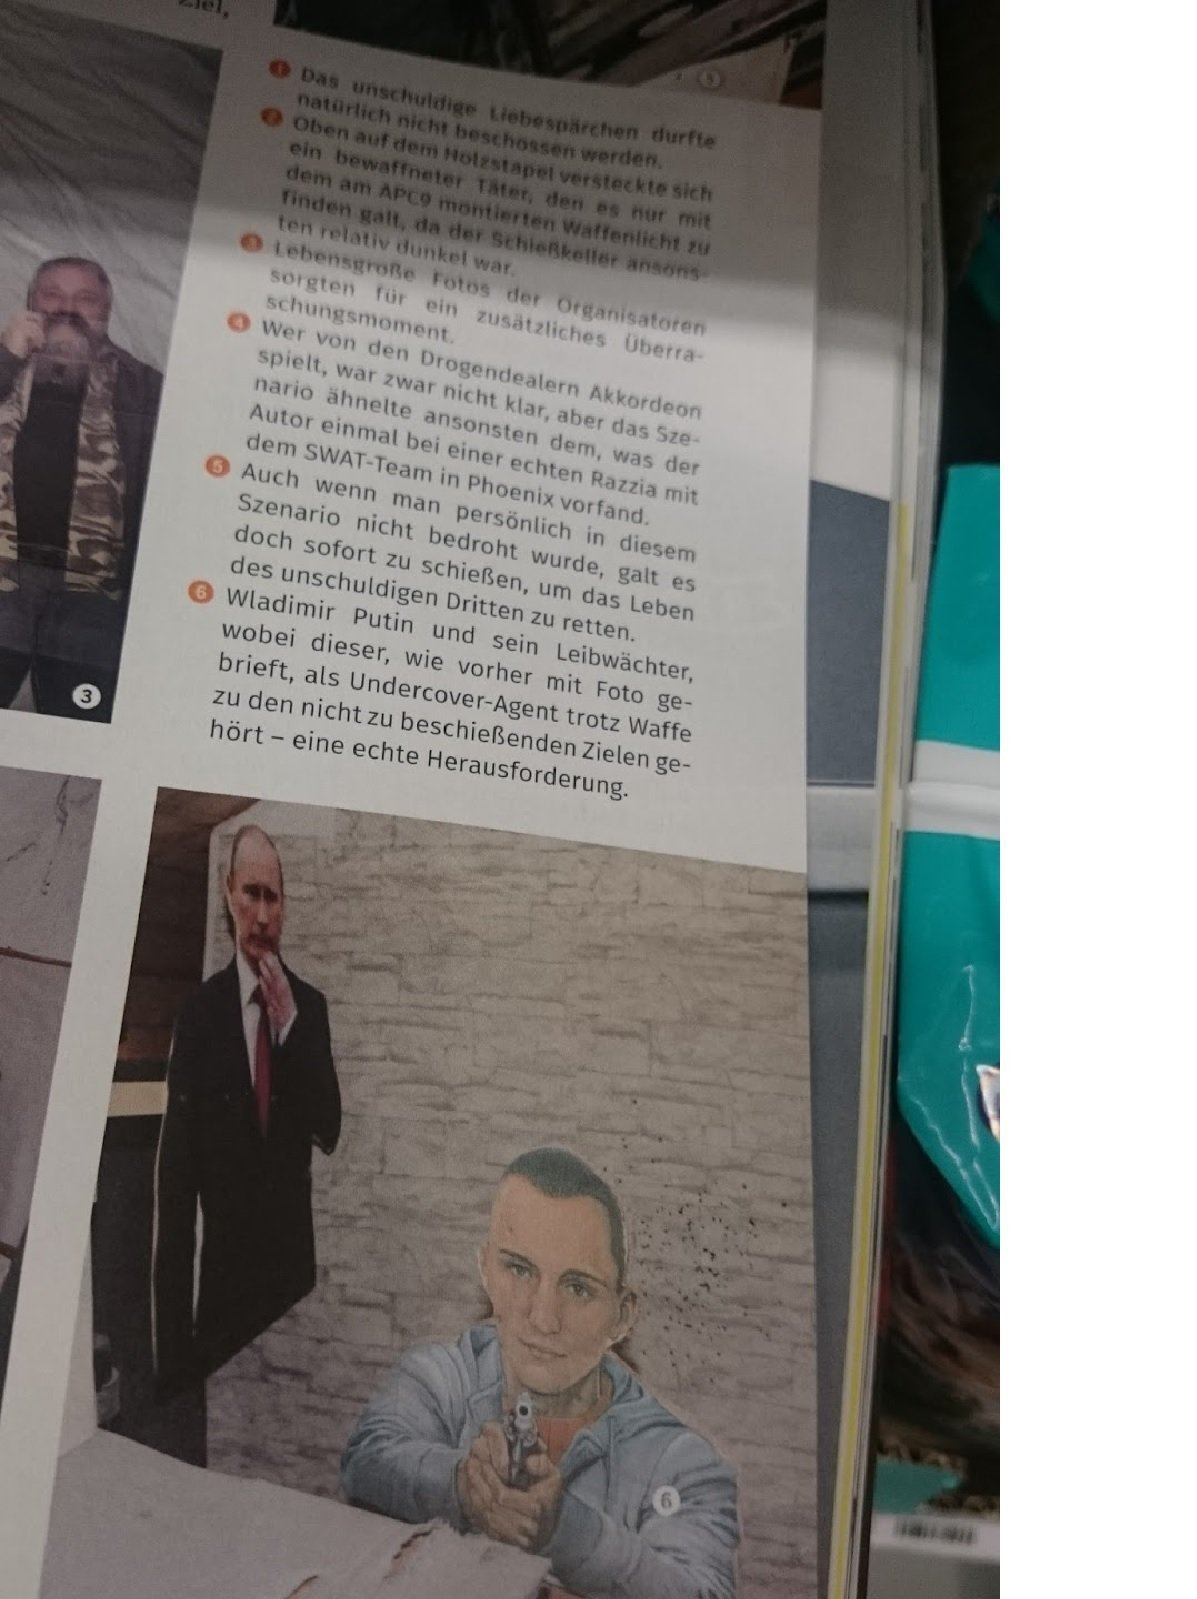 DWJ published a photo depicting figures of President Putin and his bodyguard as targets on a shooting stand